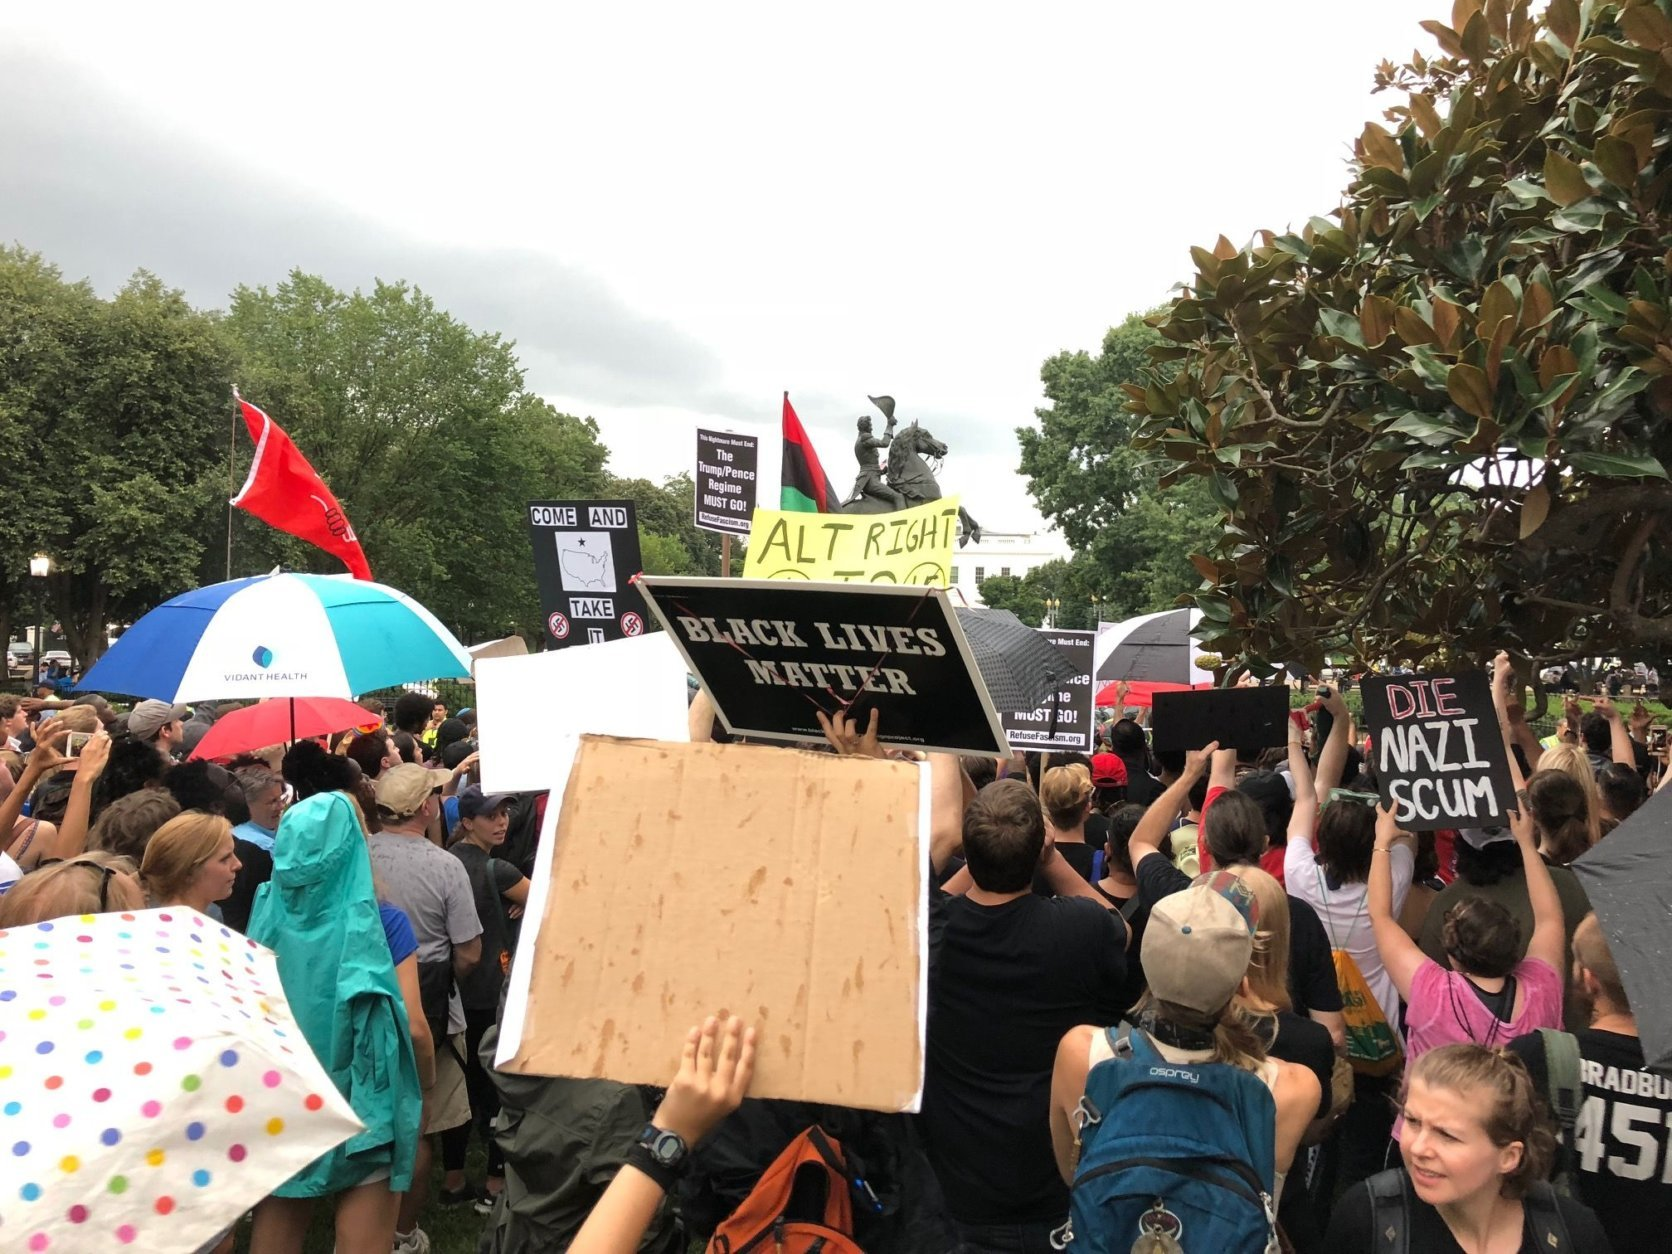 Protesters gather in front at the White House after a white nationalist rally in D.C. on Sunday, Aug. 13, 2018. (WTOP/Keara Dowd)